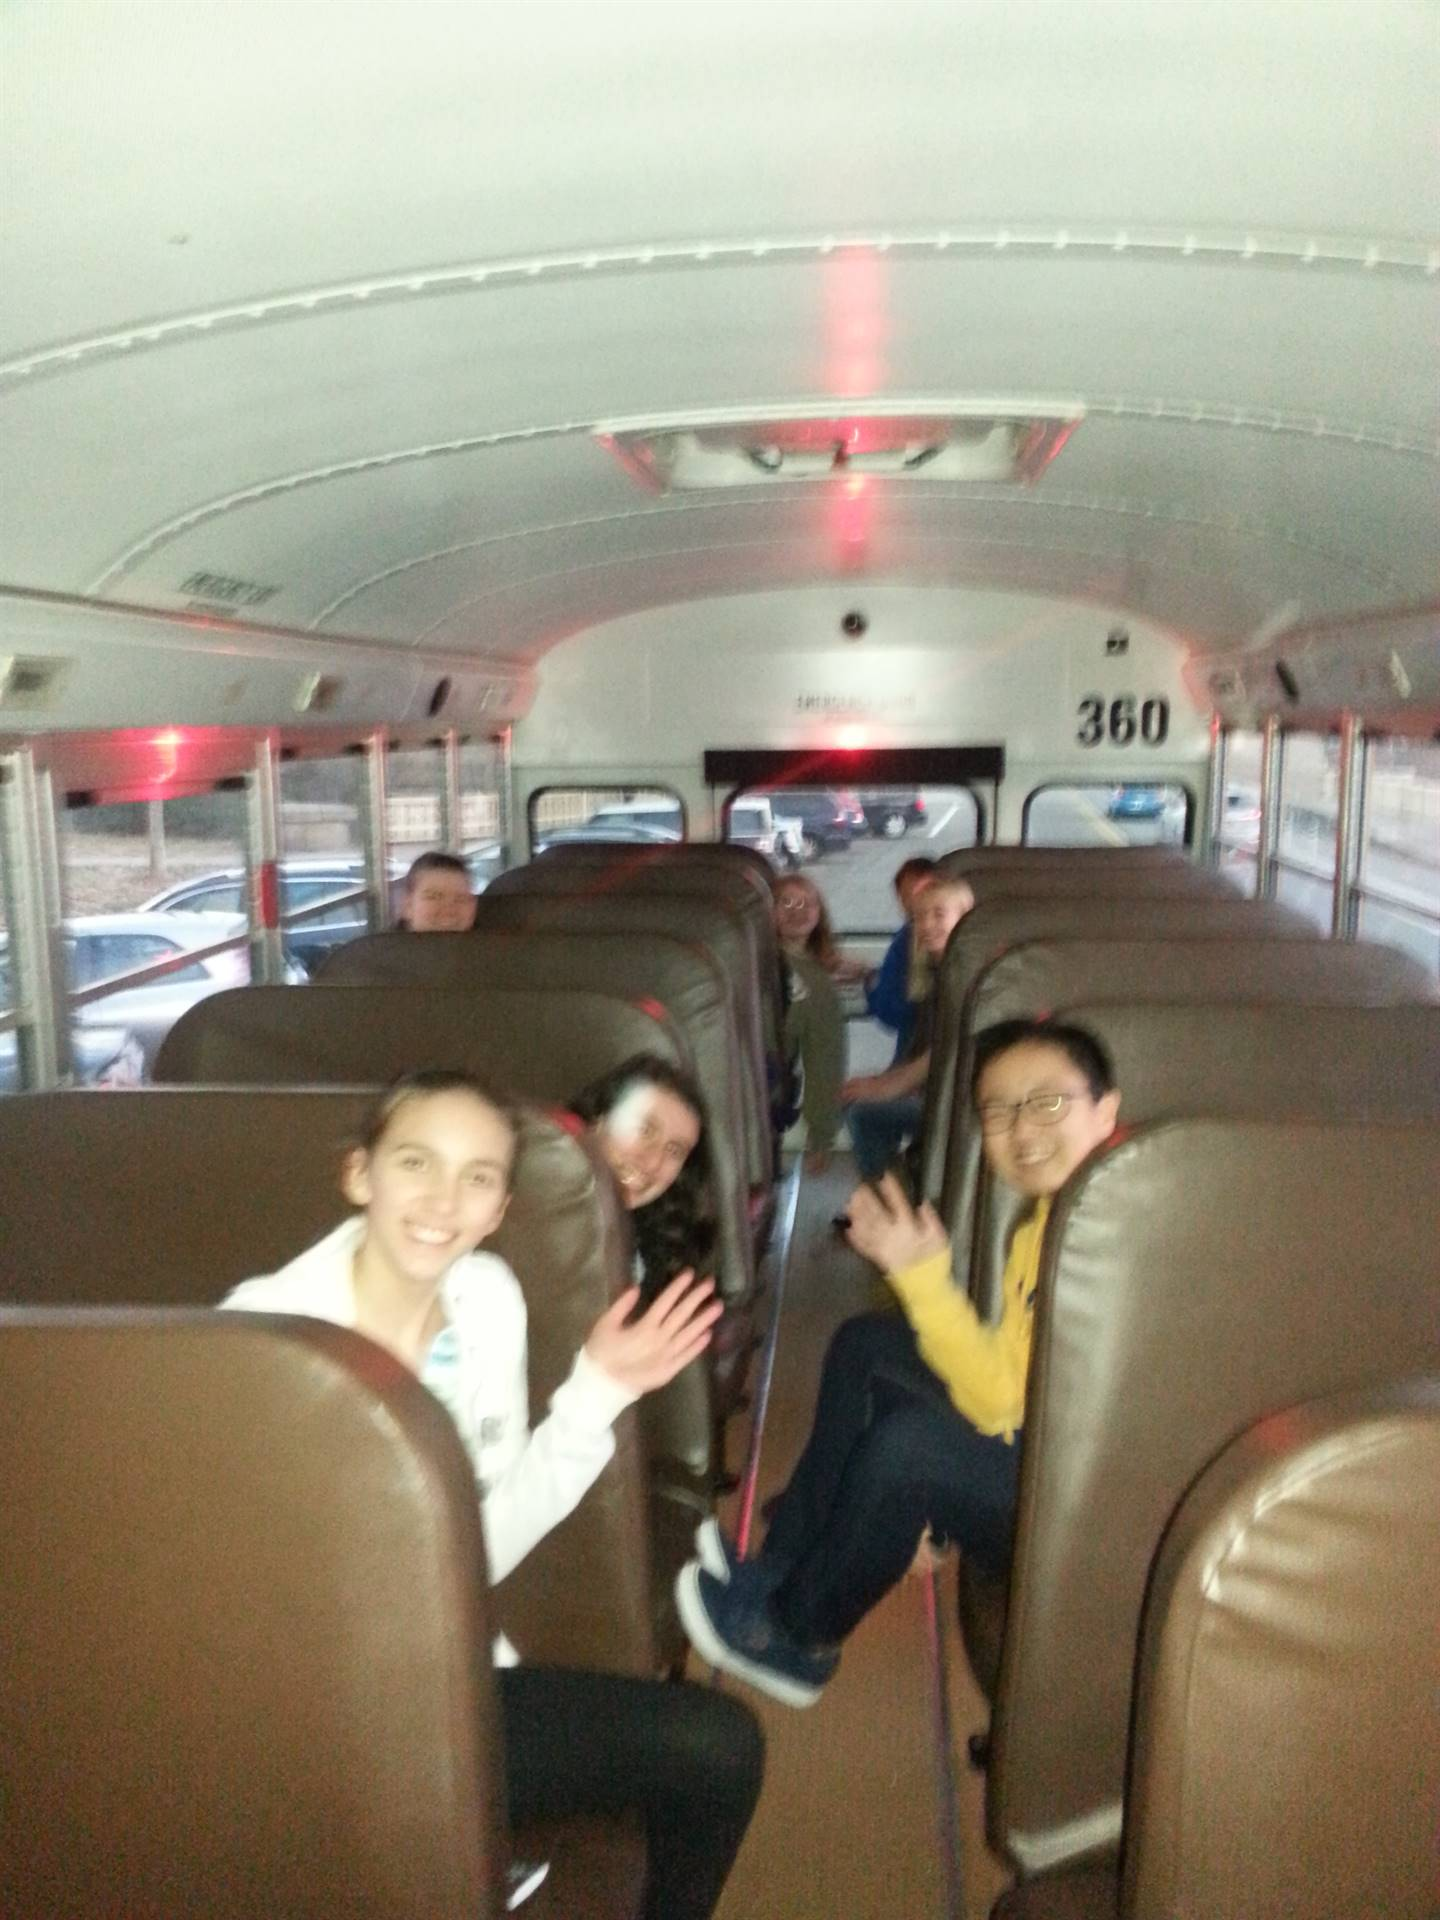 Students wave on a bus.